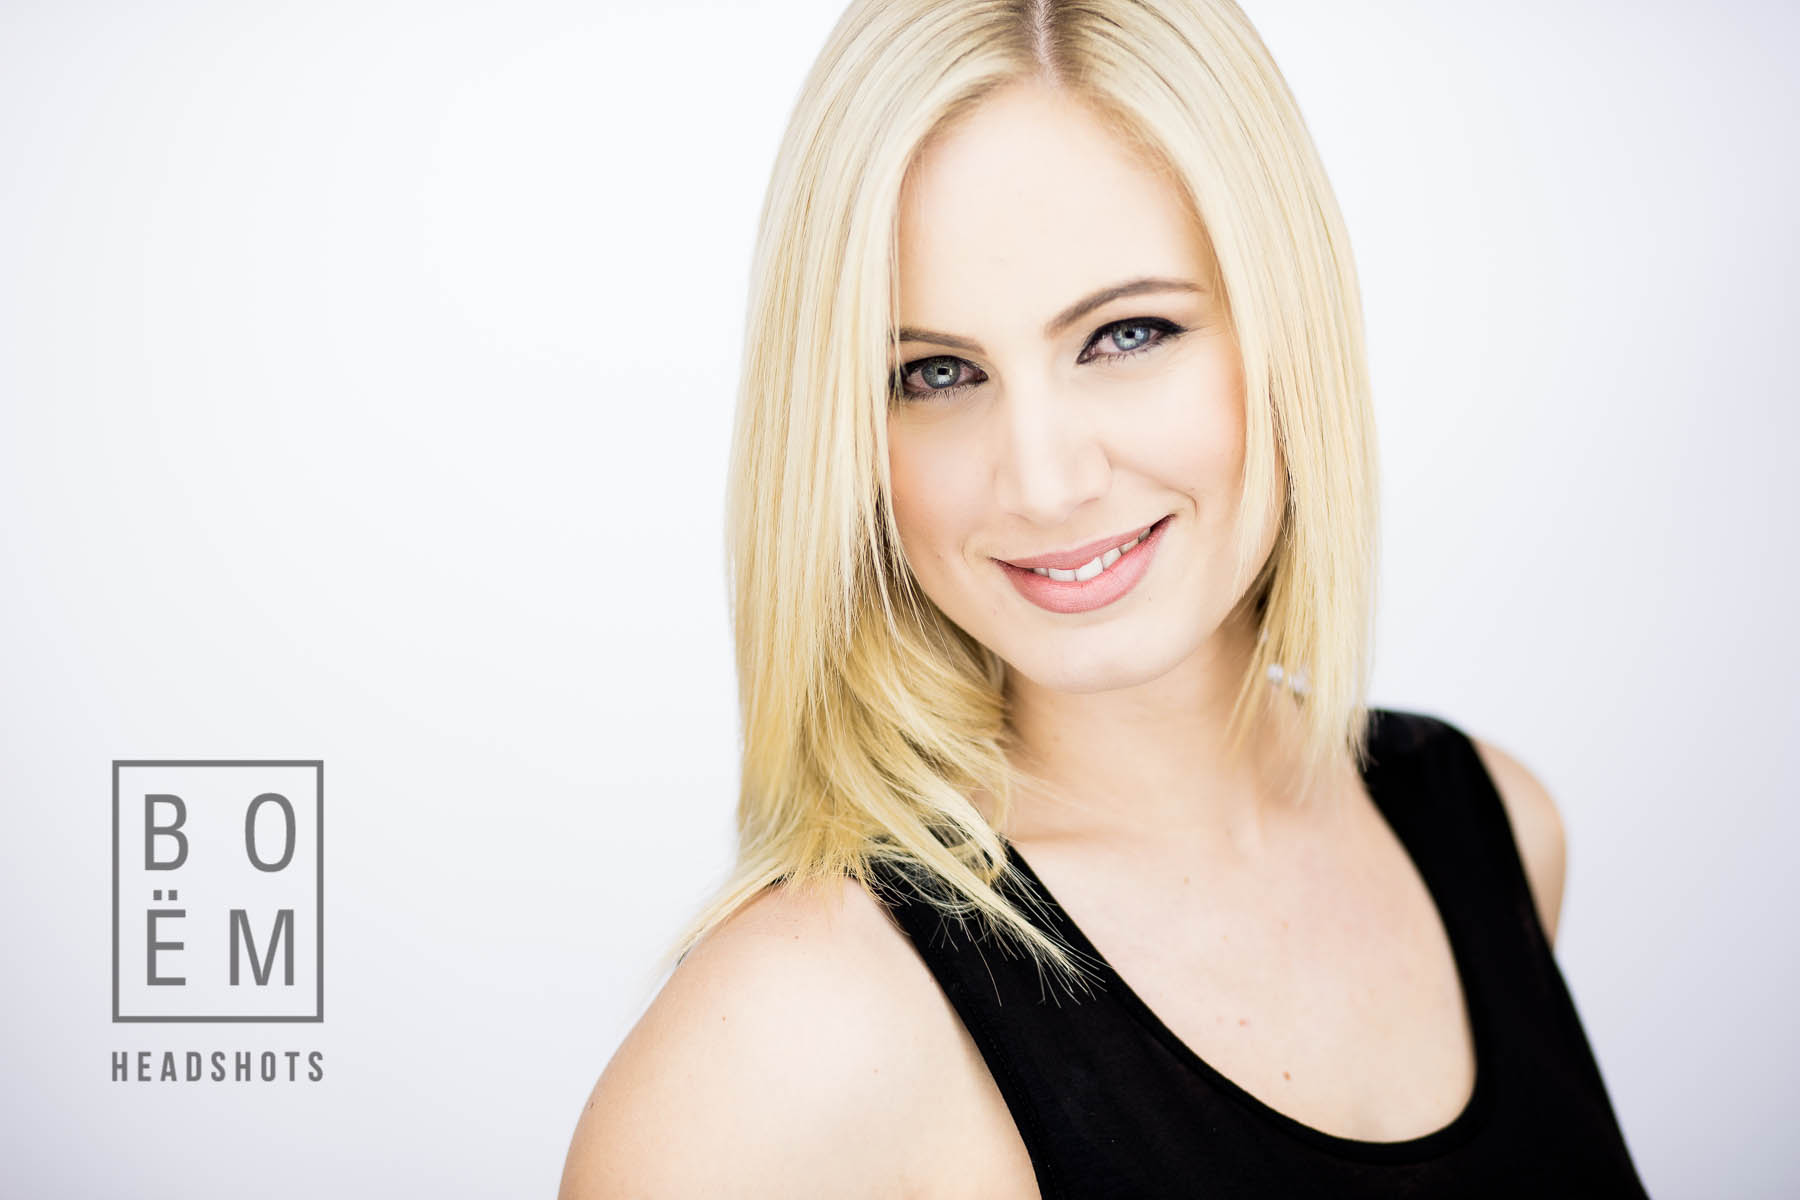 A professional headshot session for Kristen, a model and actress here in Adelaide by Andre Gooden for Boem Headshots